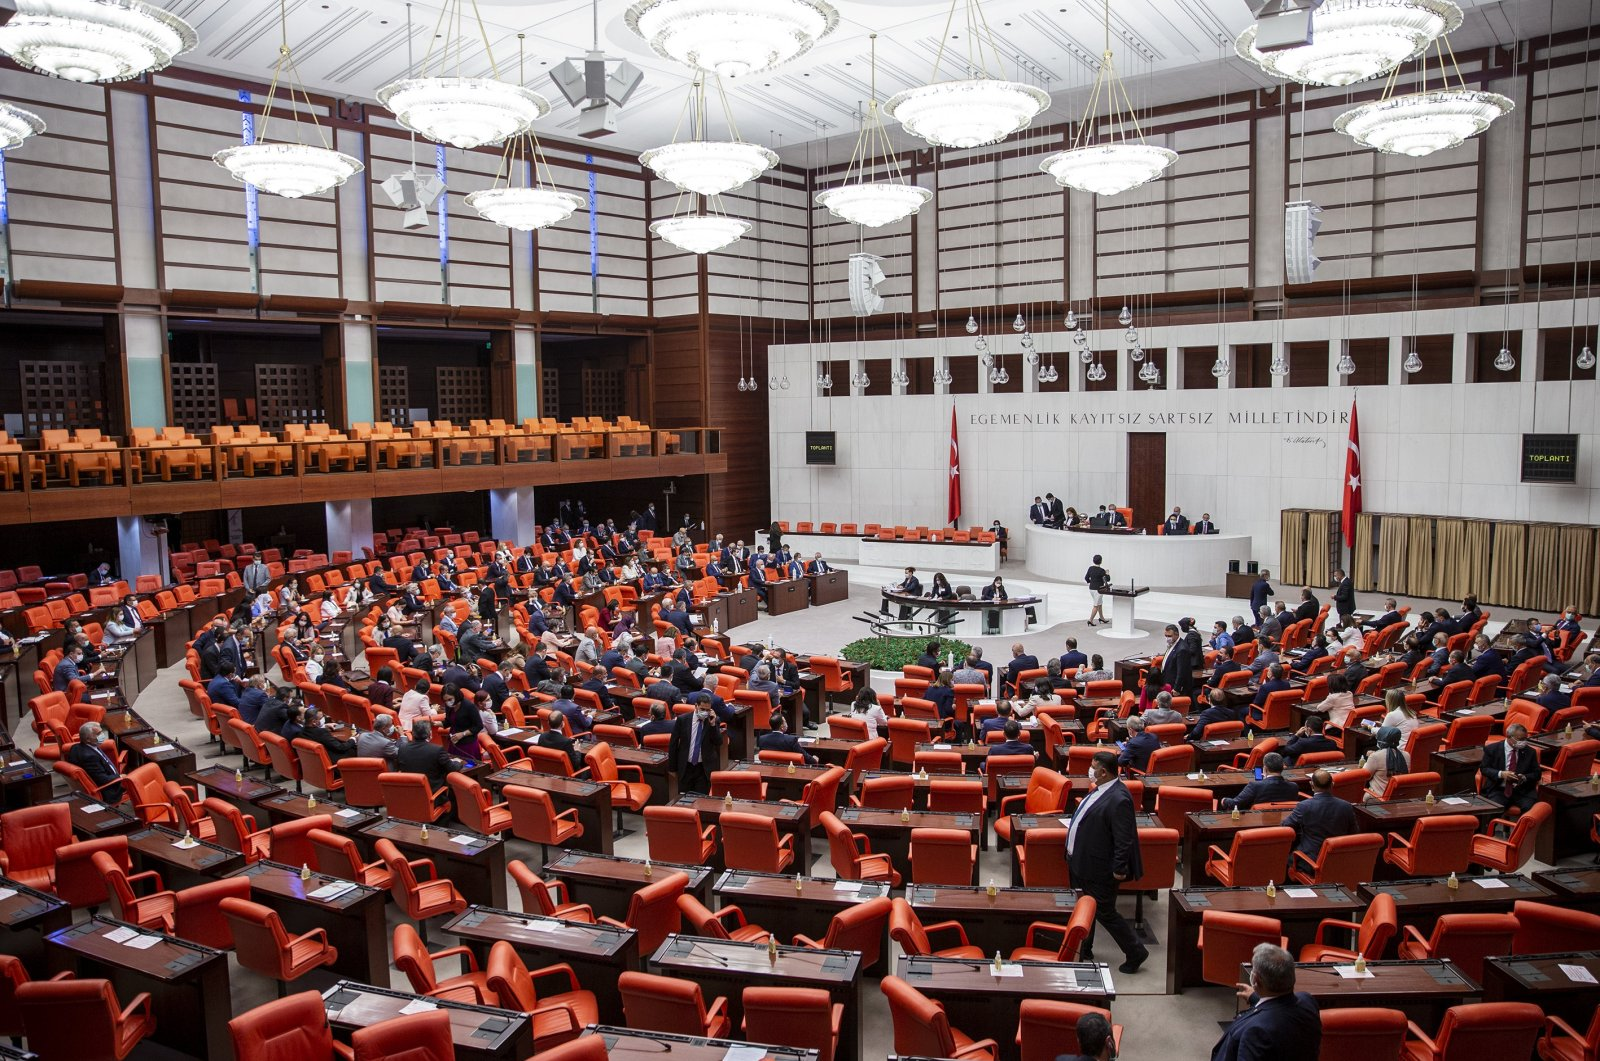 The Turkish Parliament addressed the issue of domestic violence and femicide with a discussion that took place during a plenary session on Wednesday, July 22, 2020. (AA Photo)